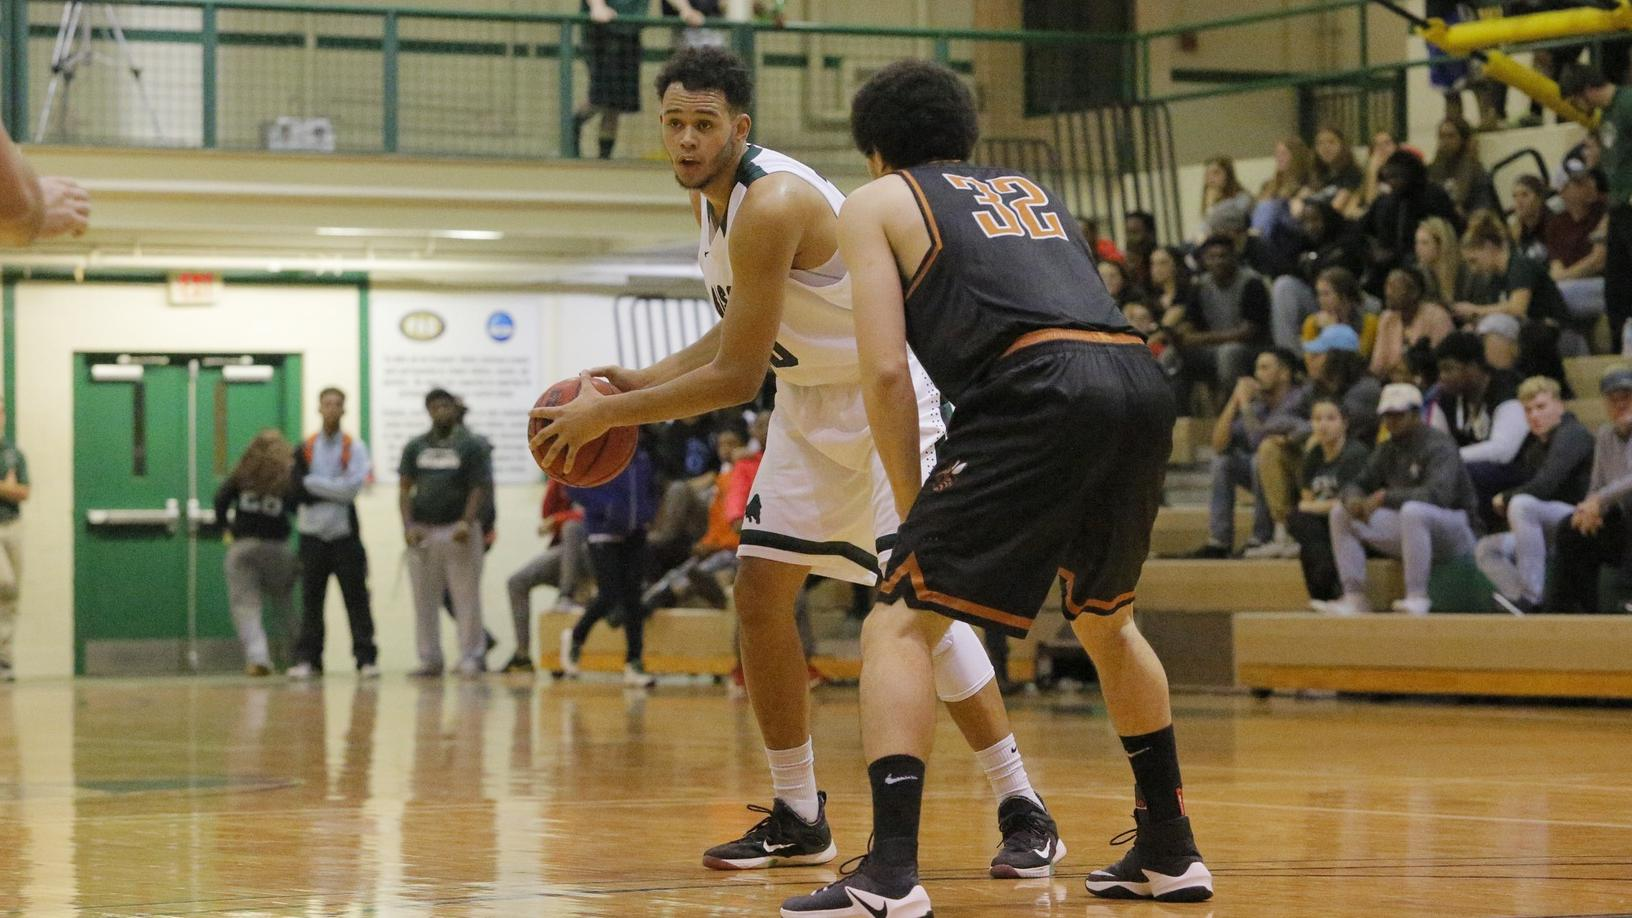 Men's basketball defeated by Lancaster Bible, 83-69